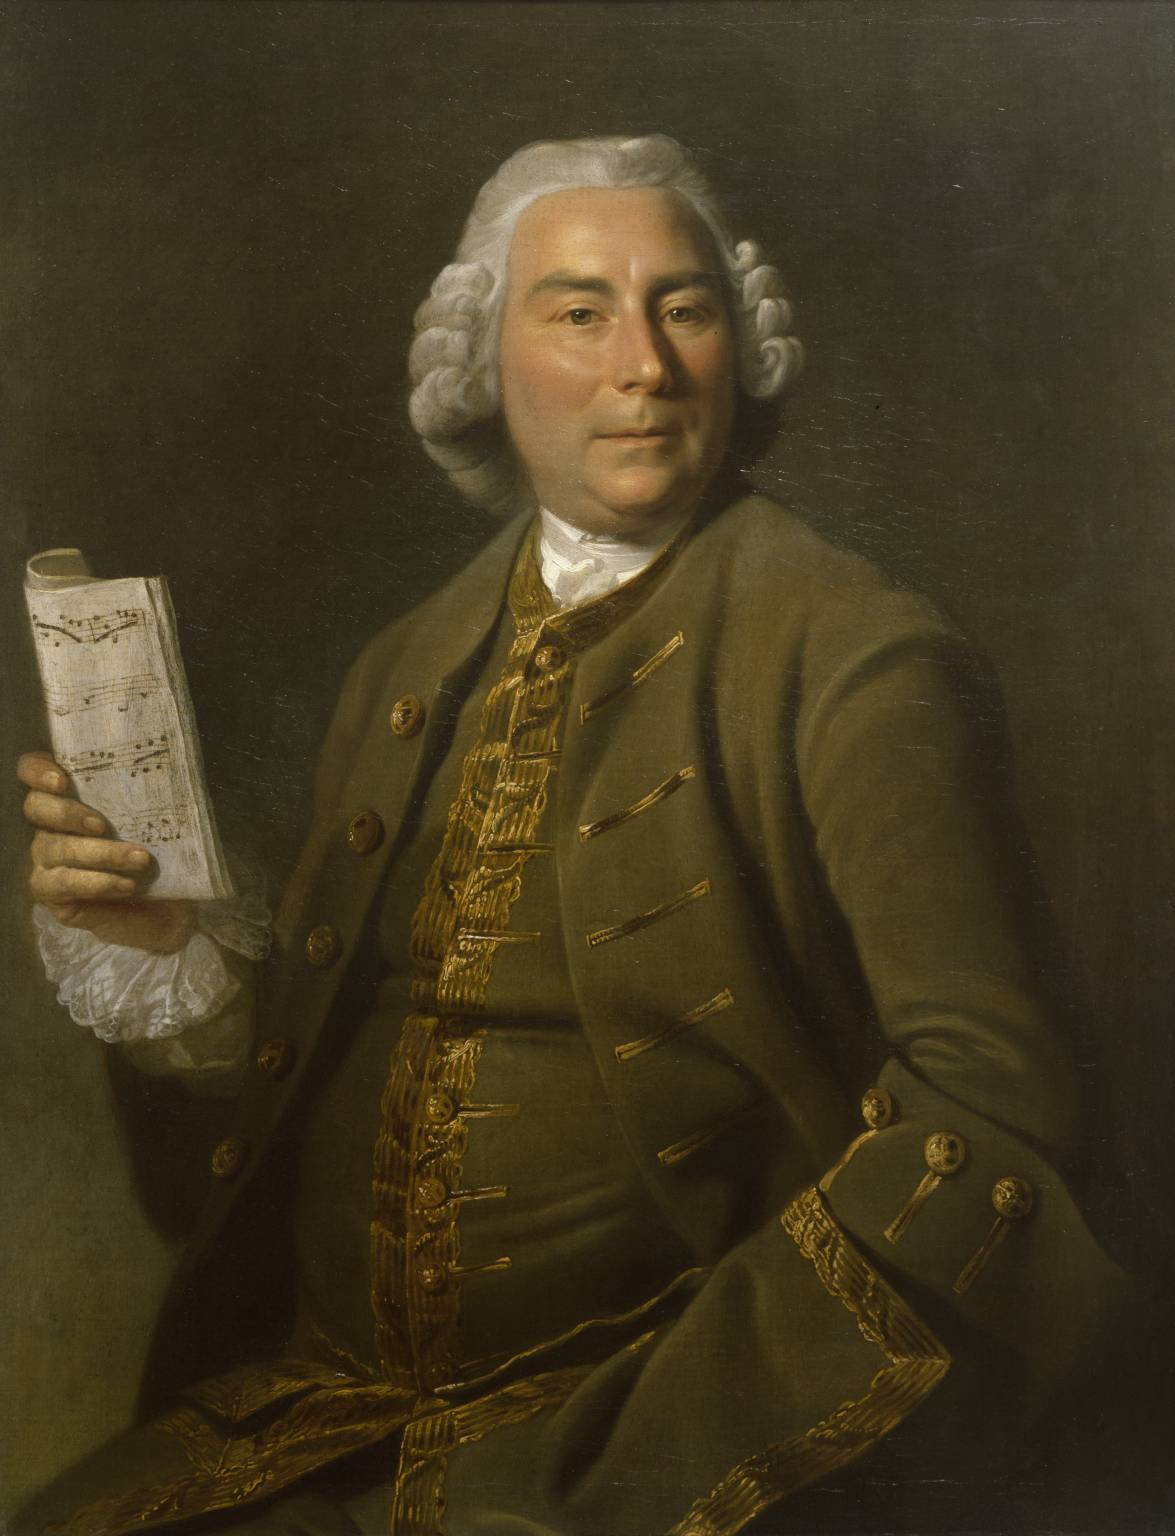 Stephen Rimbault by Johannes Zofanny, National Portrait Gallery